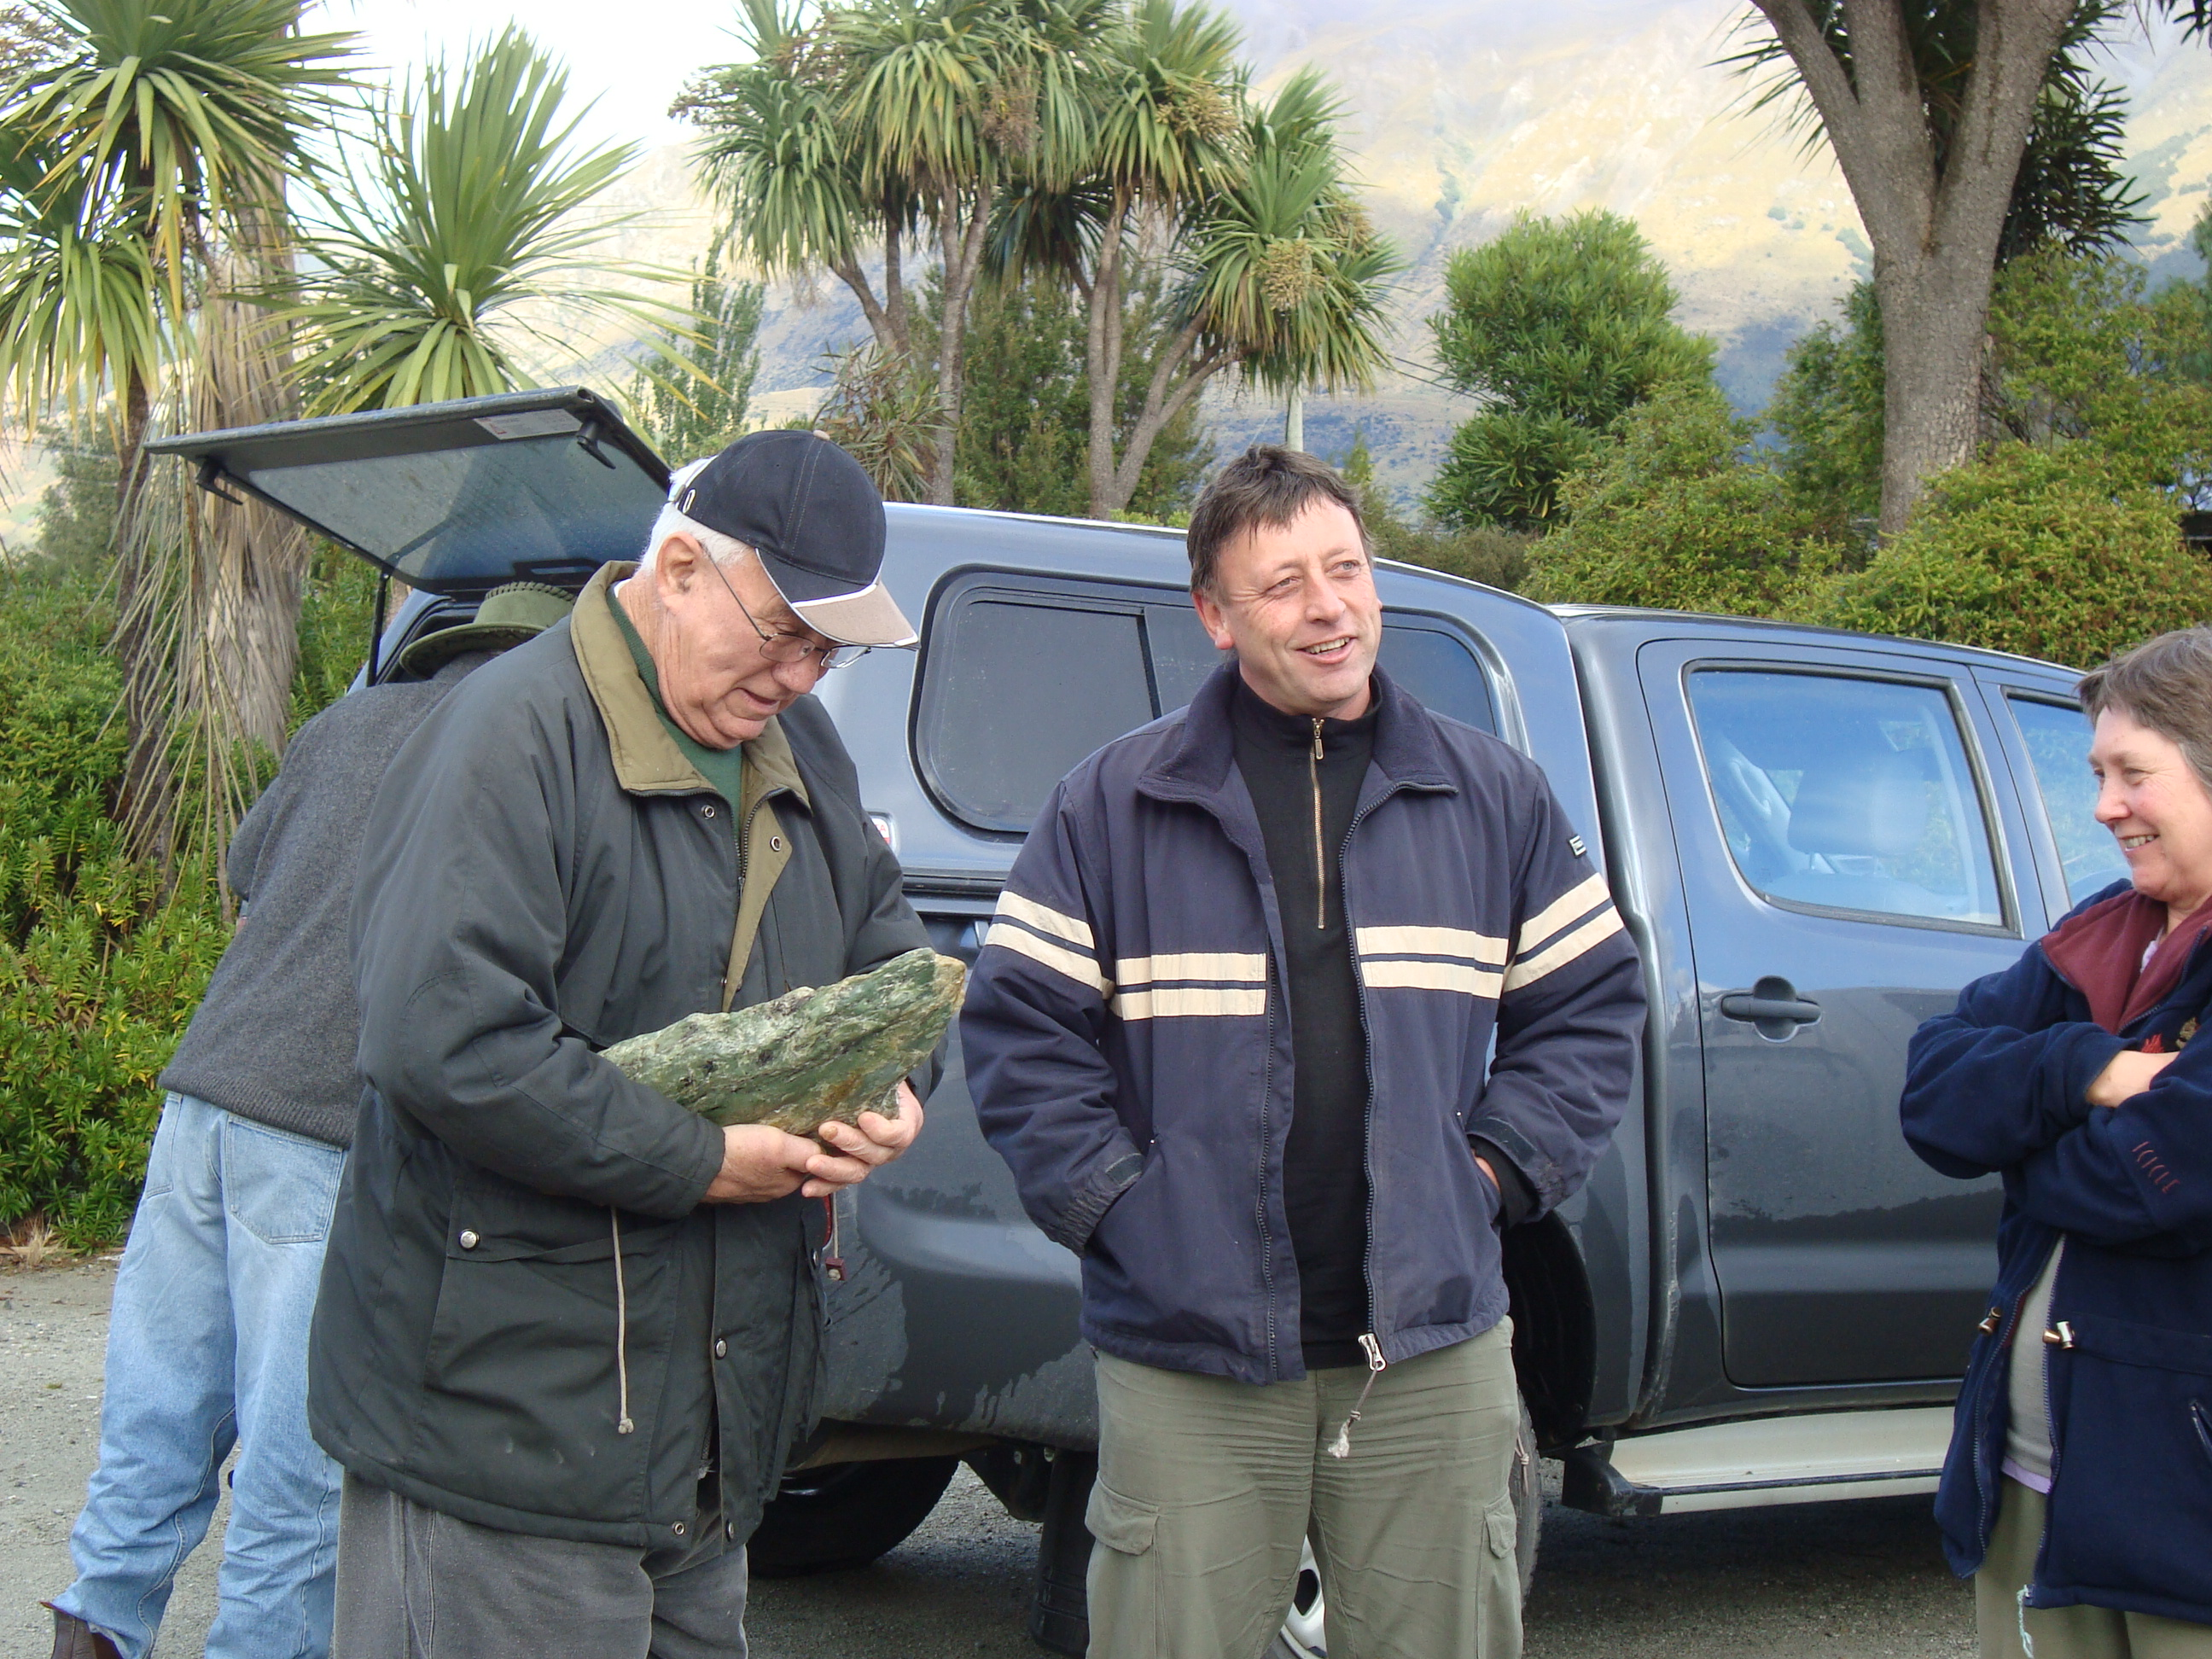 <p>Matapura Ellison standing in-between Trevor Howse and Carolyn Campbell at Tāhuna (Glenorhcy) during a Cultural Mapping Hikoi to Whakatipu Waimāori (Lake Wakatipu) in 2010. <em>Te Rūnanga o Ngāi Tahu Collection, Ngāi Tahu Archive, 2017-0271</em></p>